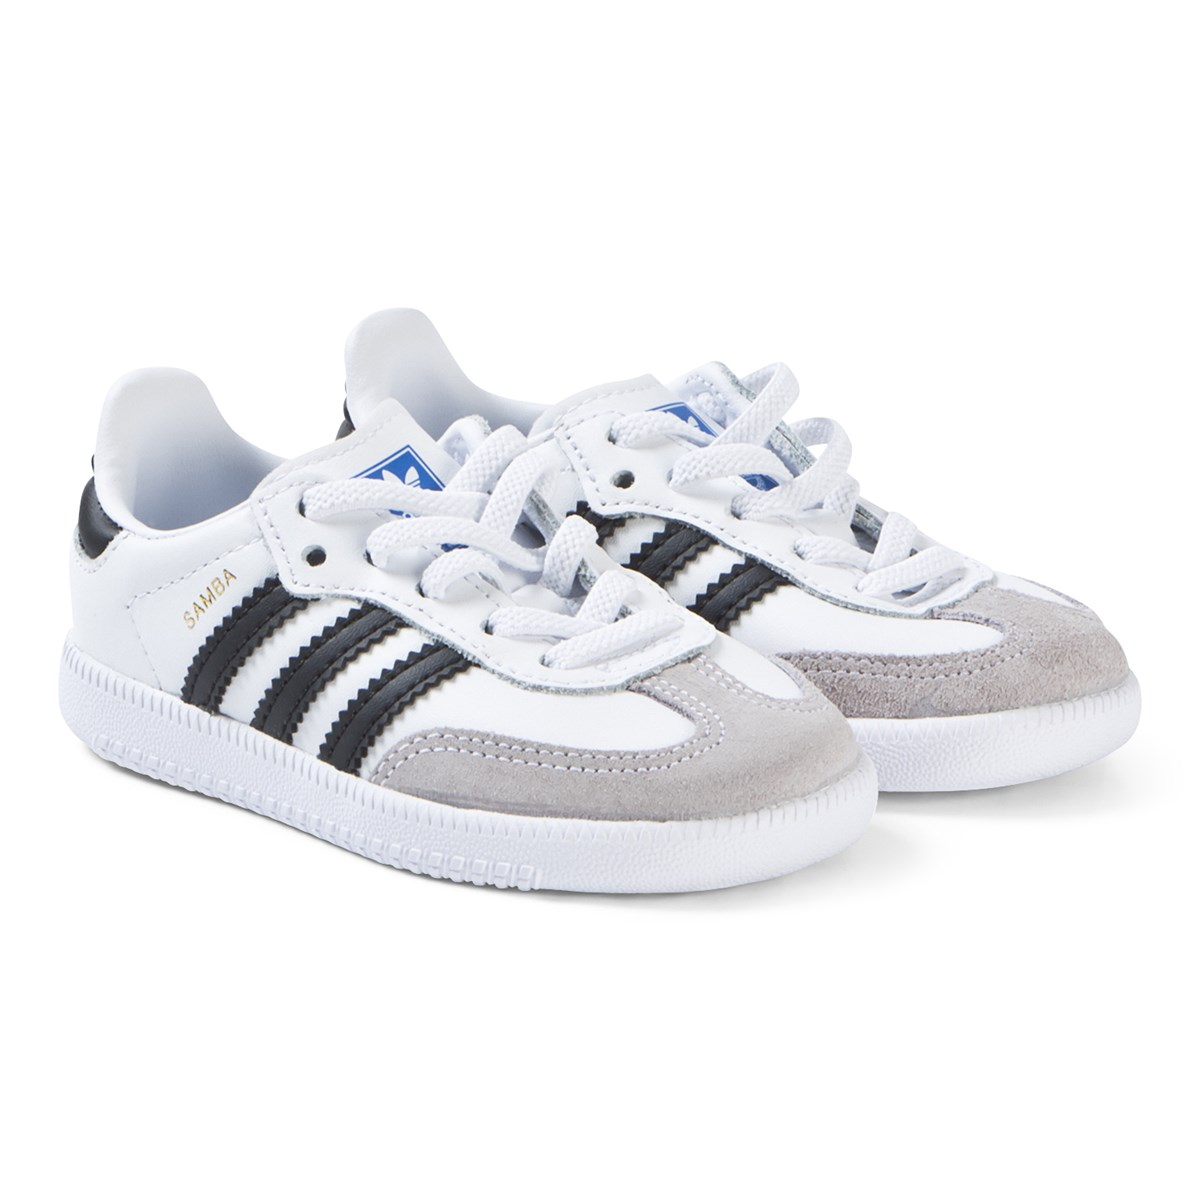 sneakers for cheap 87e37 bebf8 samba og sneakers vit svart adidas originals